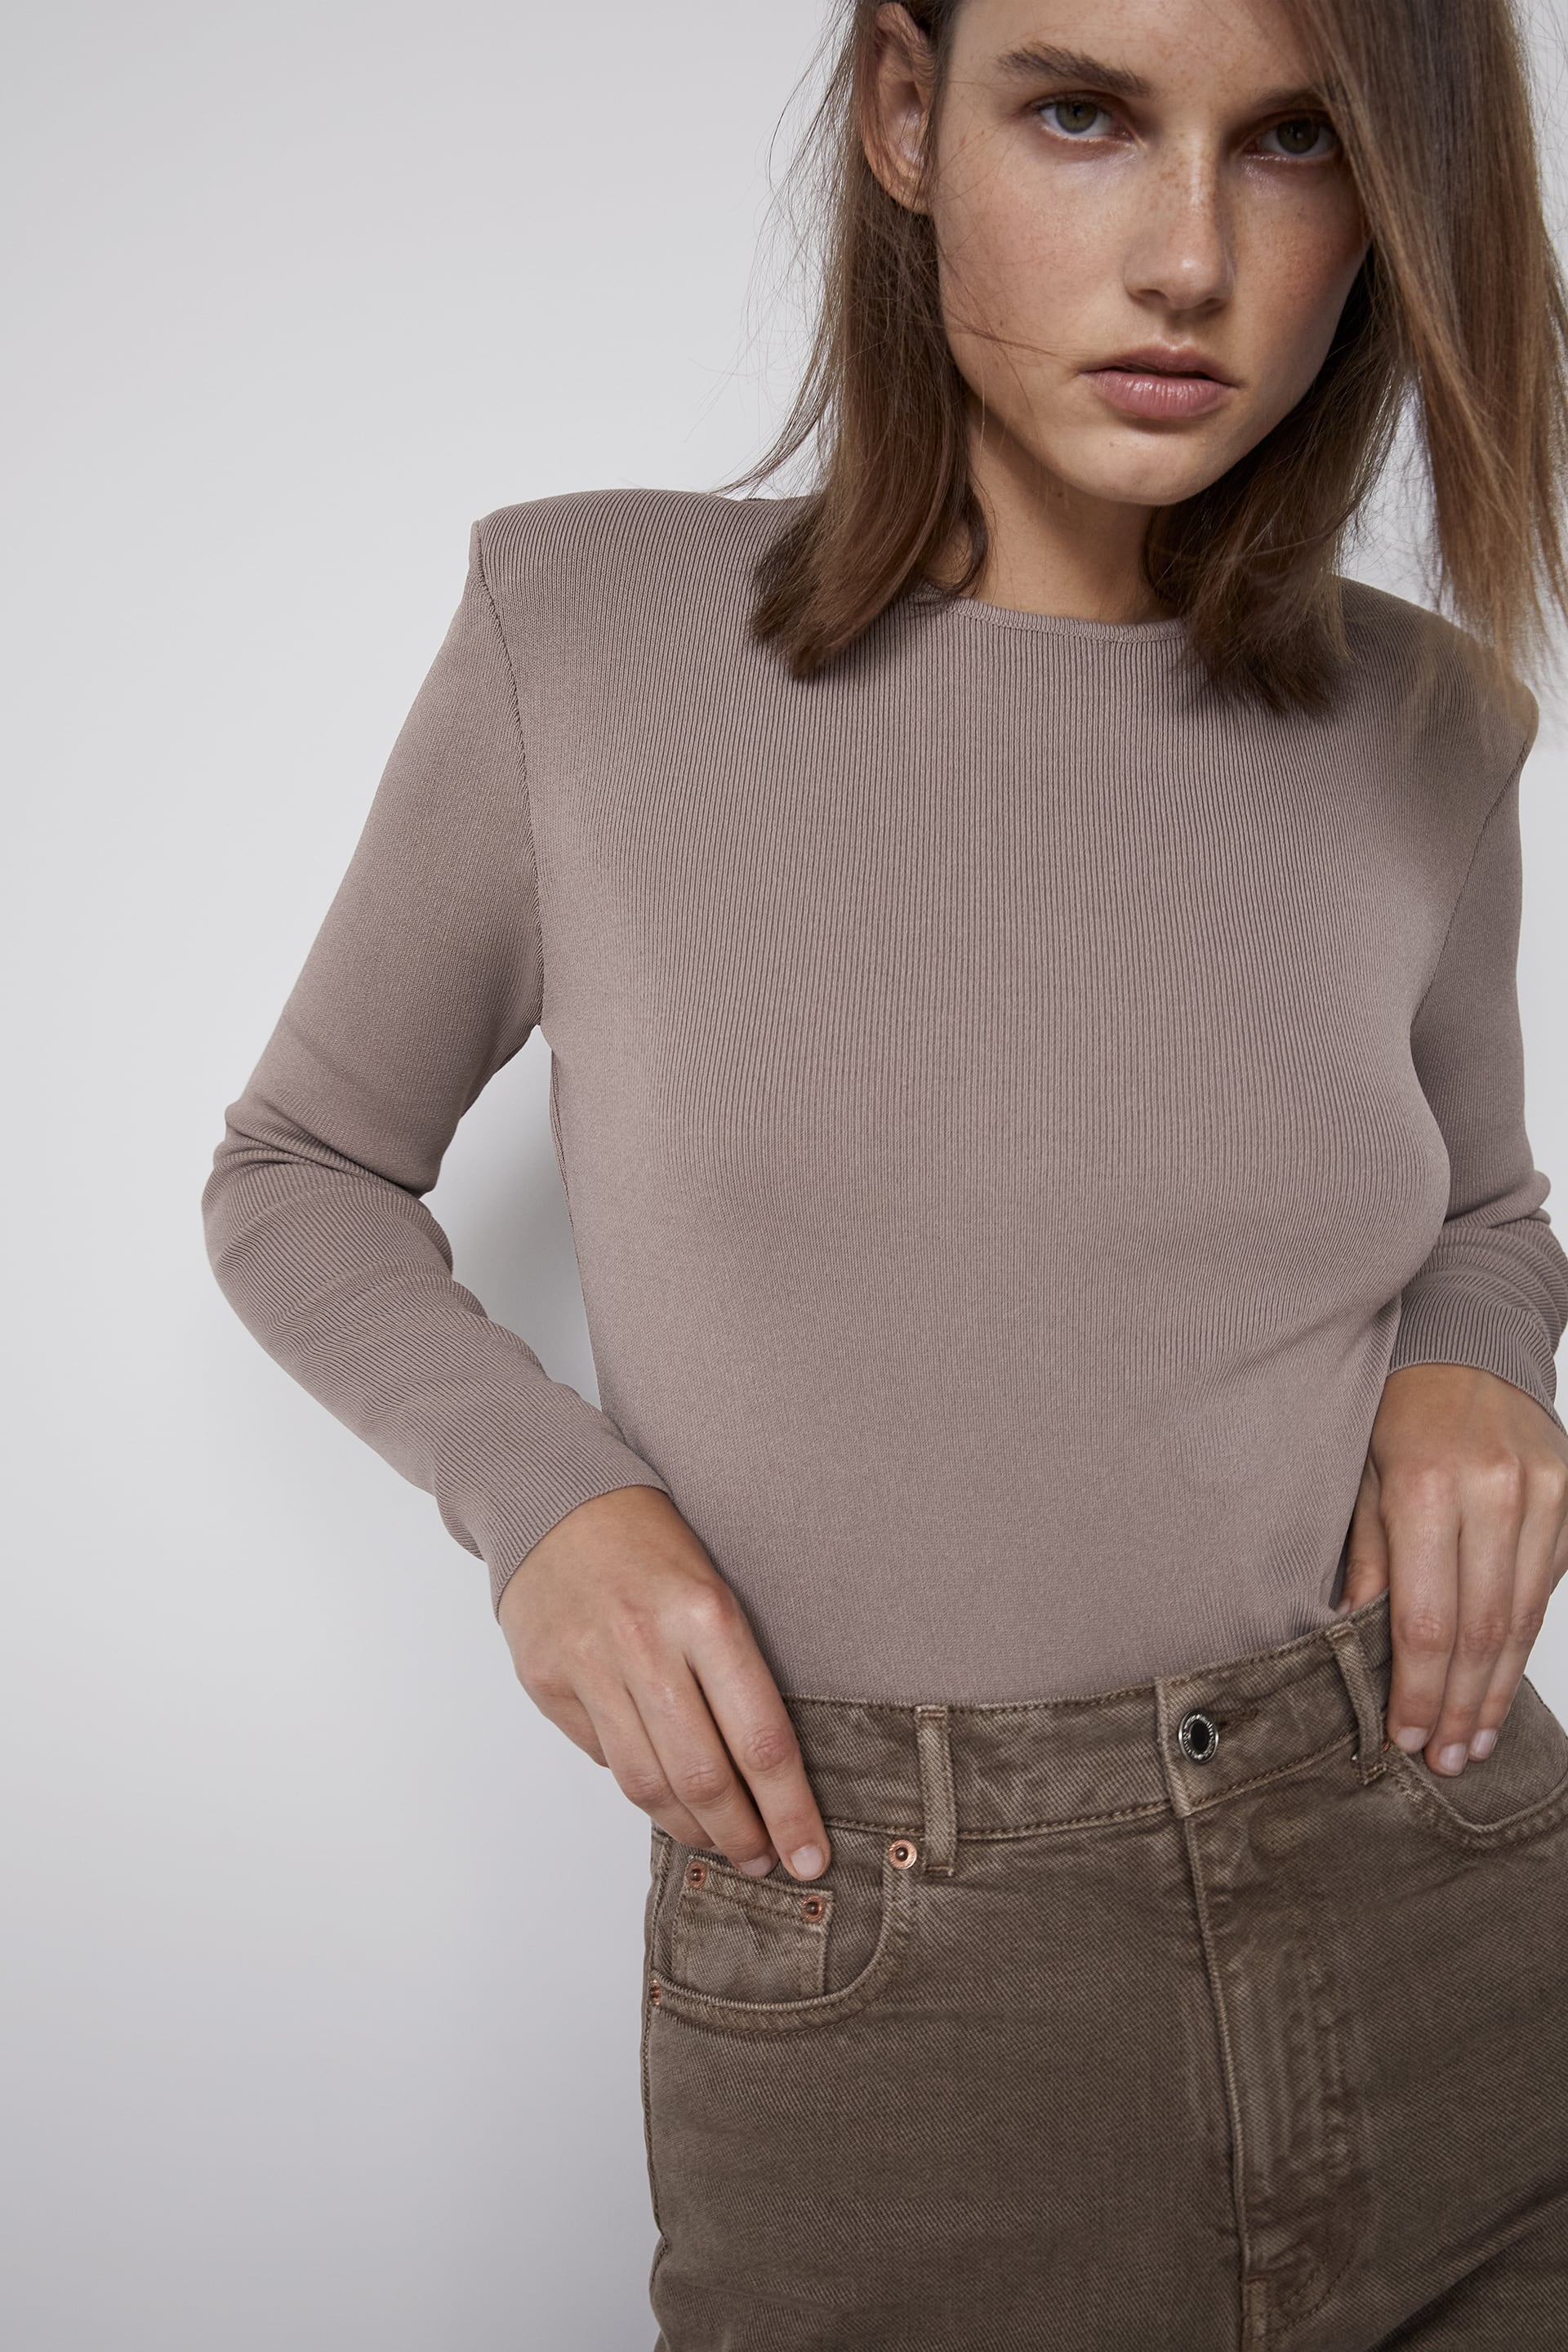 Details about  /ZARA NEW WOMAN RIBBED KNIT SWEATER WITH SHOULDER PADS BONE S-XL 5536//131